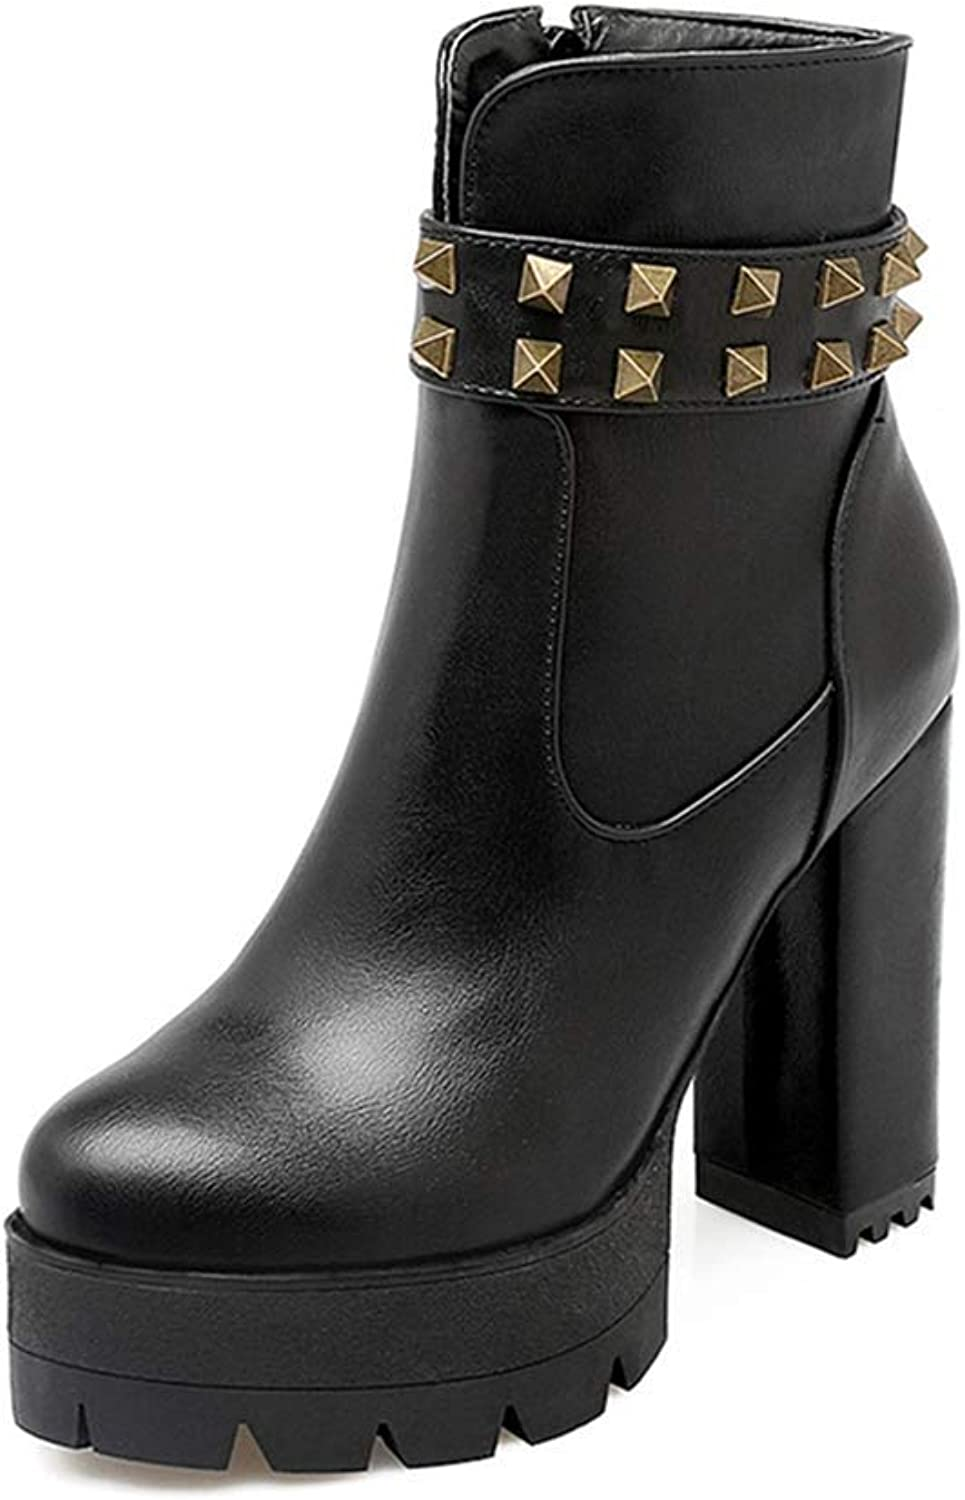 KEREE Women's Platform Chunky High Ankle Boots Waterproof Round Toe Rivets Zipper Block Heeled Short Bootie